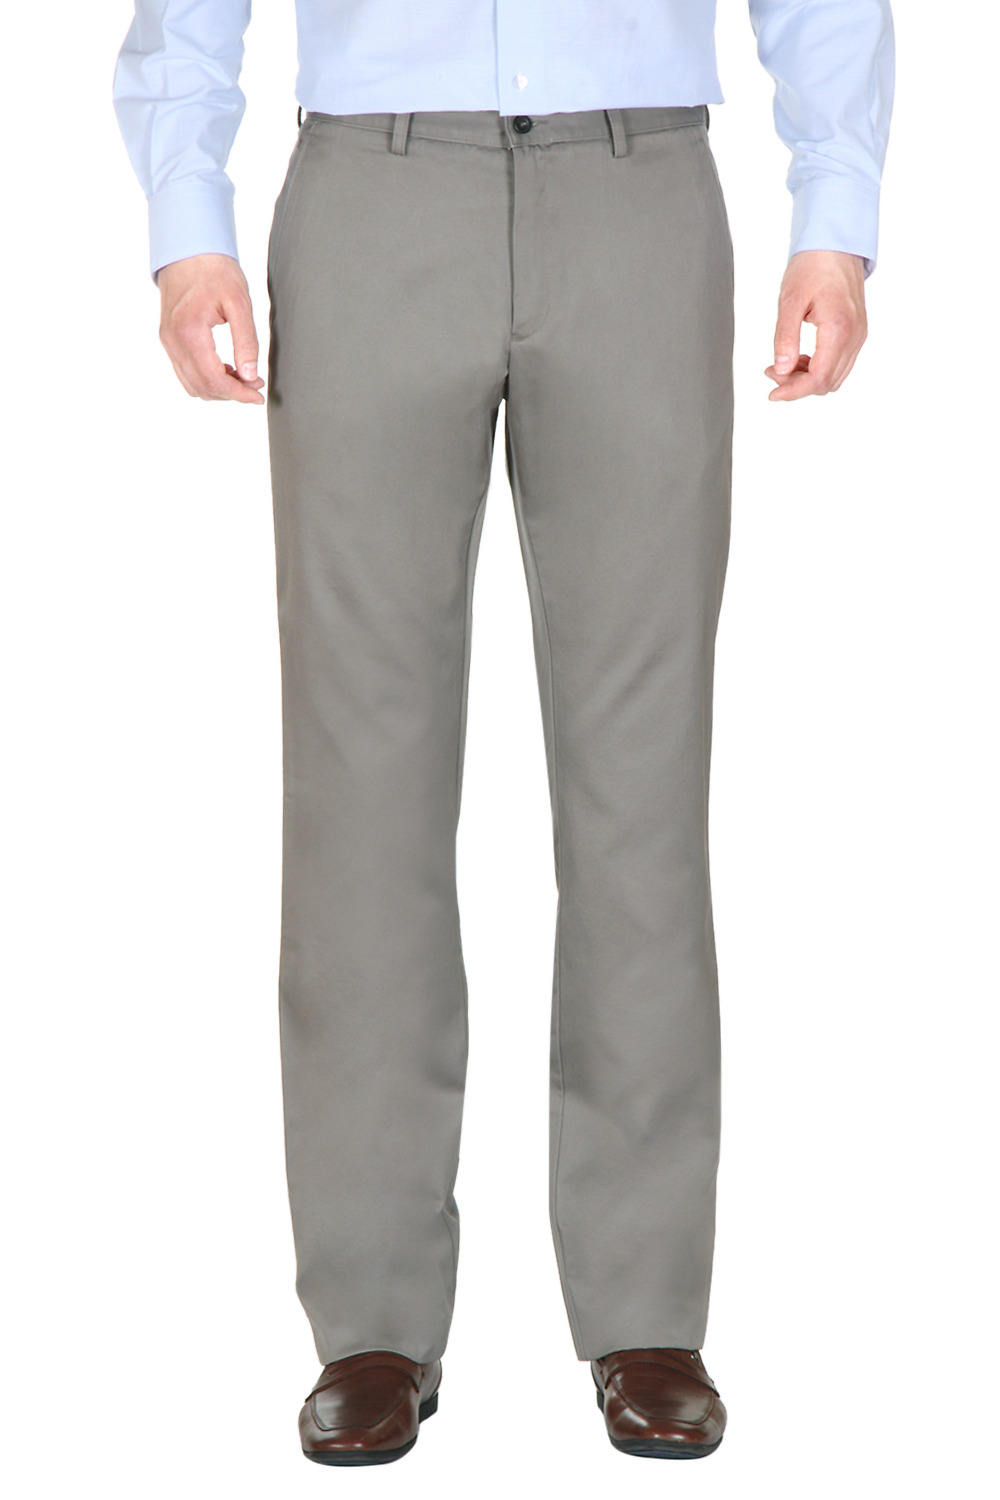 d1e8c218808 Louis Philippe Trousers & Chinos, Formal Regular Fit Trousers for Men at  Louisphilippe.com